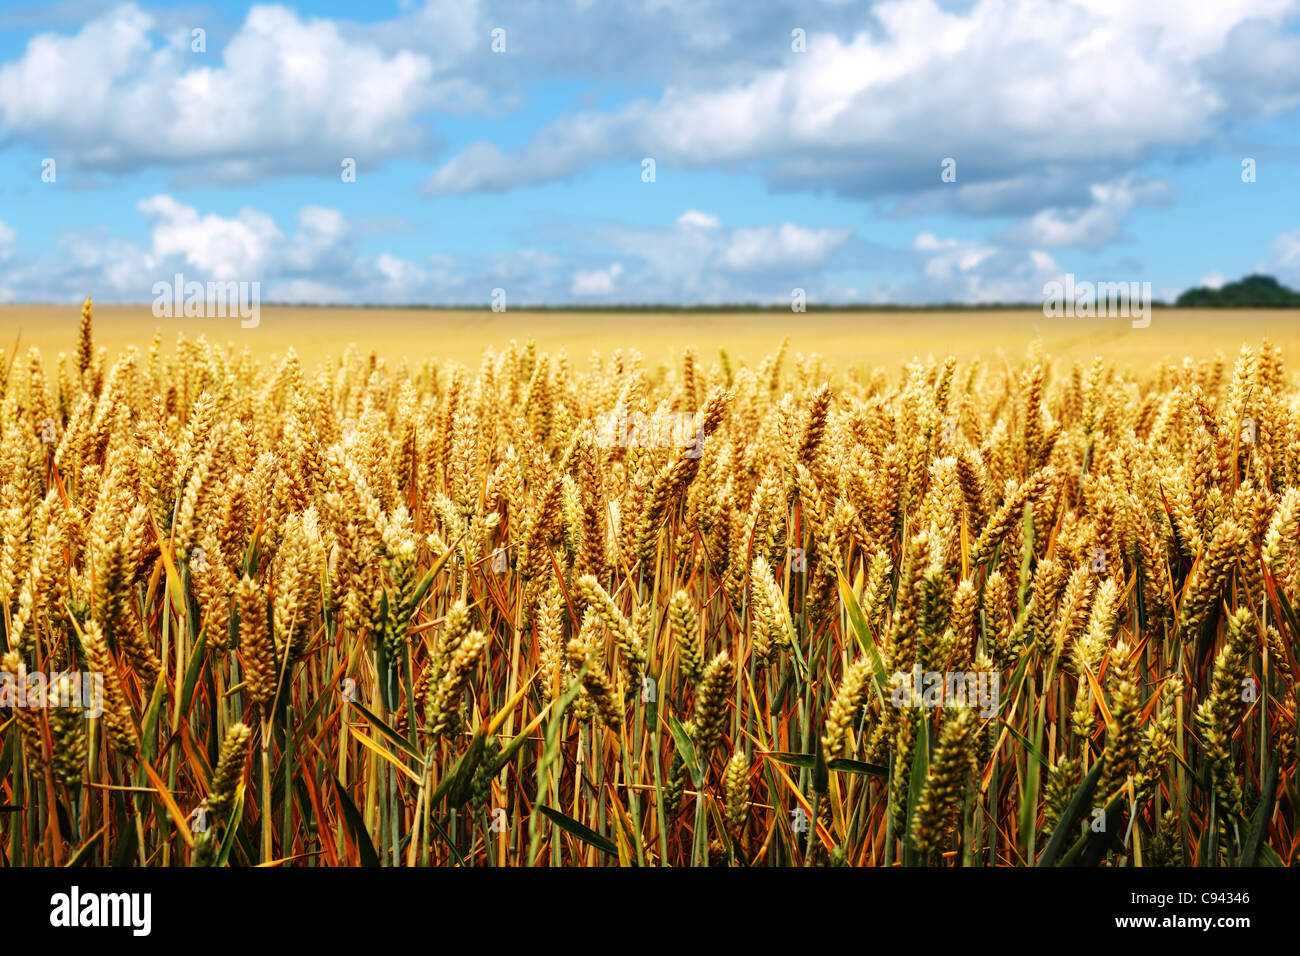 Ripe wheat field on a summer day - Stock Image